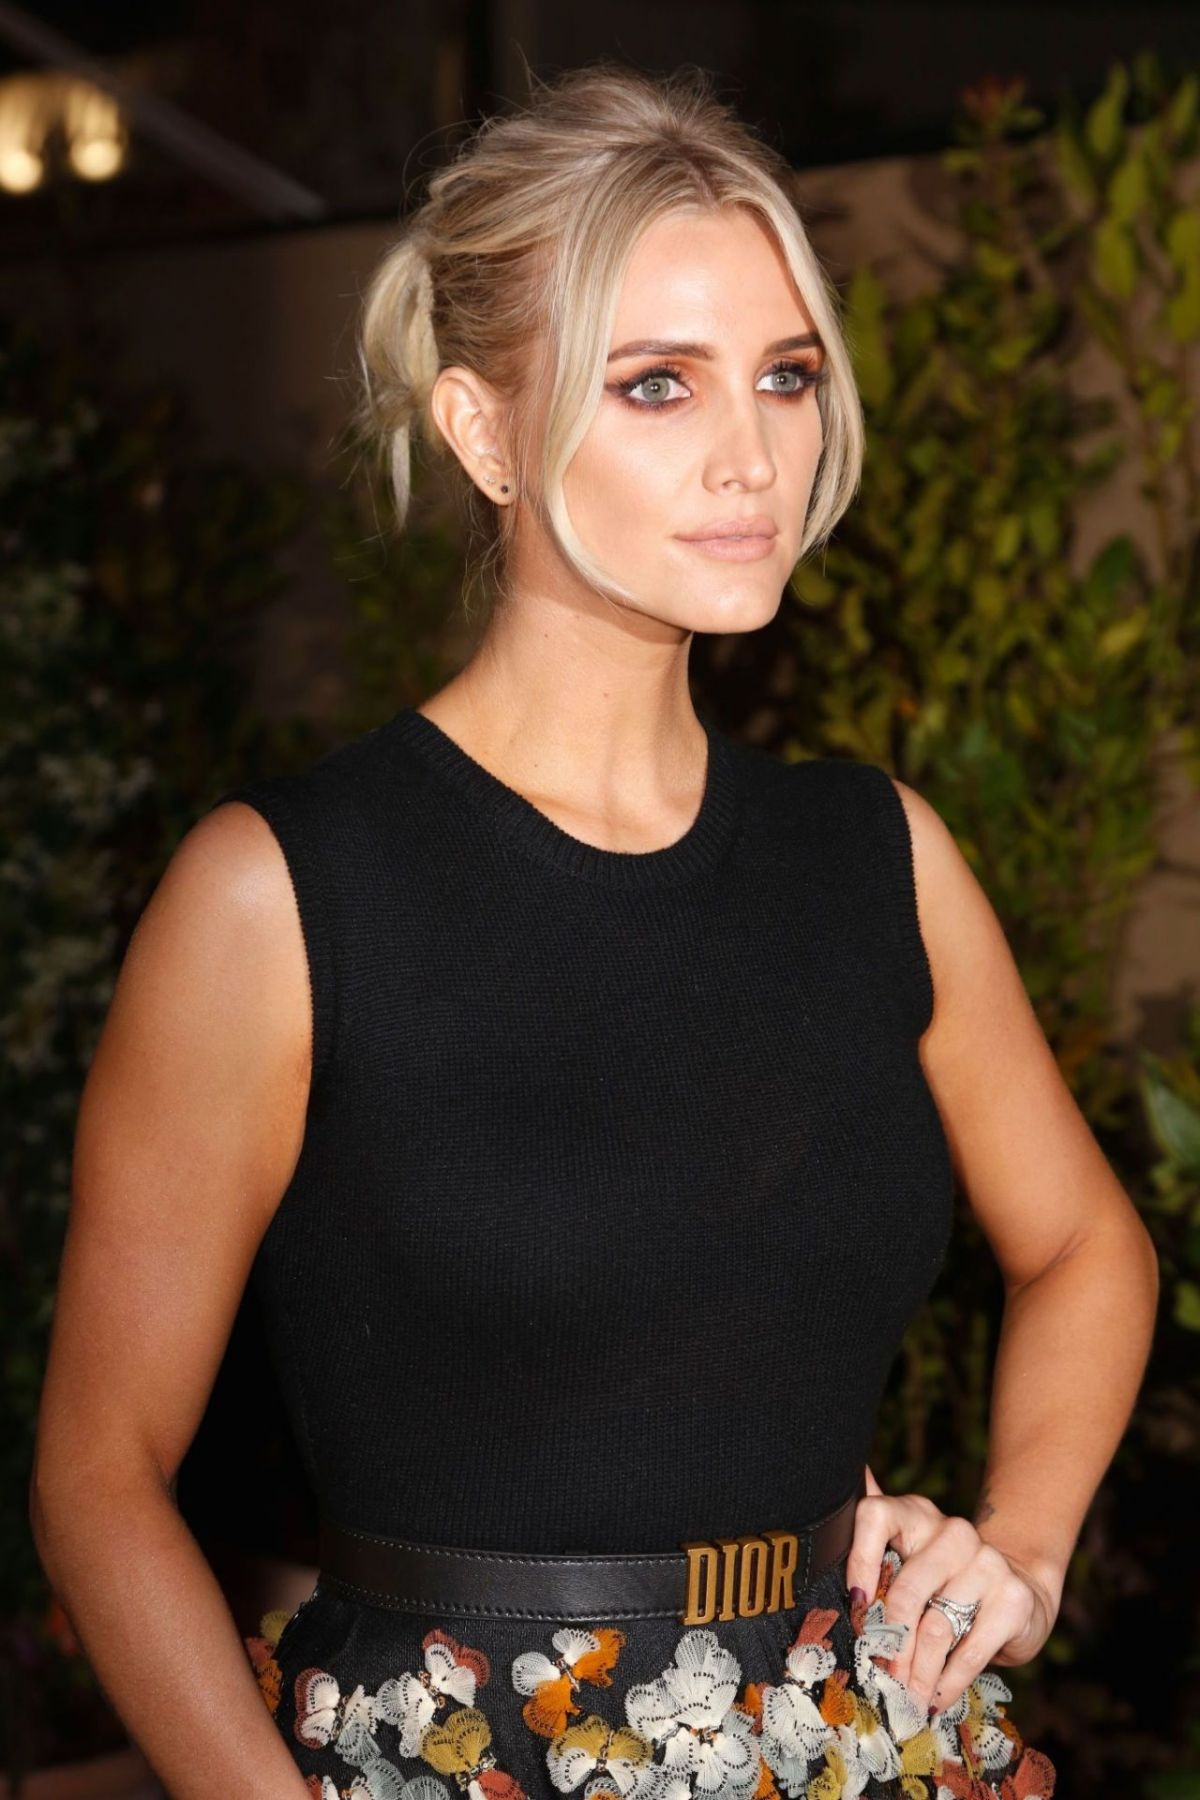 ashlee-simpson-dior-and-vogue-paris-dinner-at-fred-l-ecailler-in-cannes-05-15-2019-5